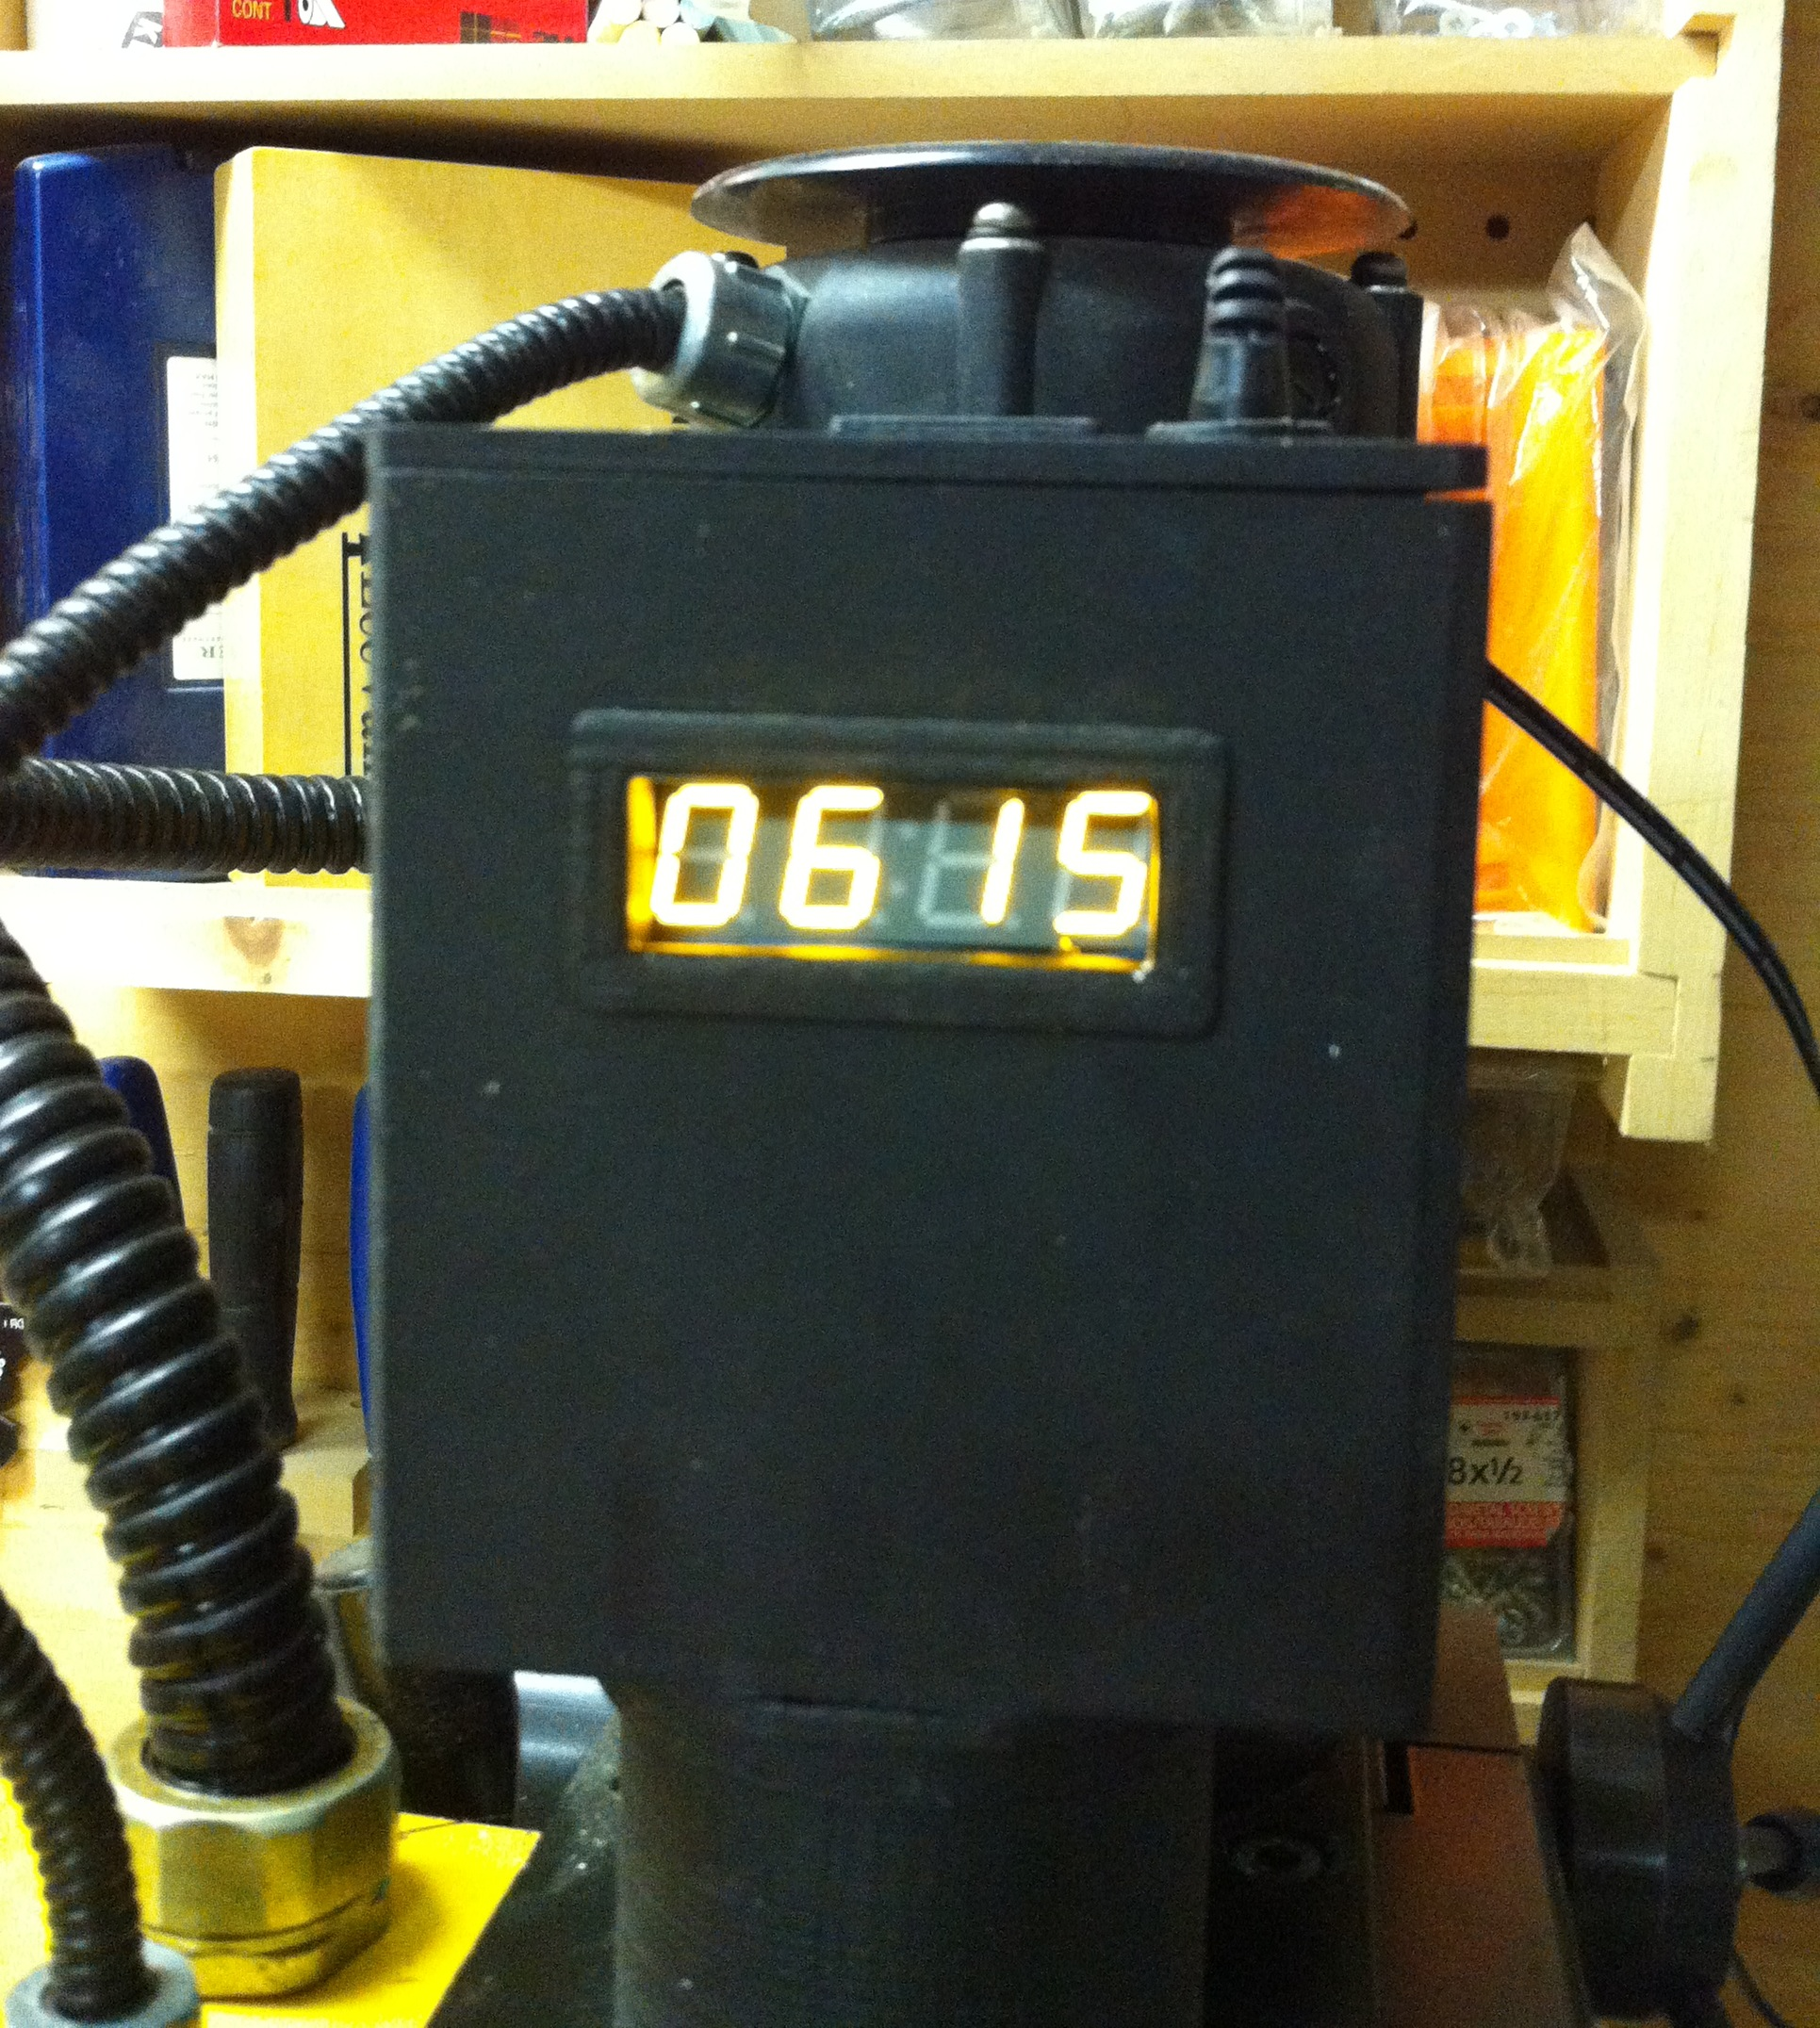 RPM meter for a Milling machine